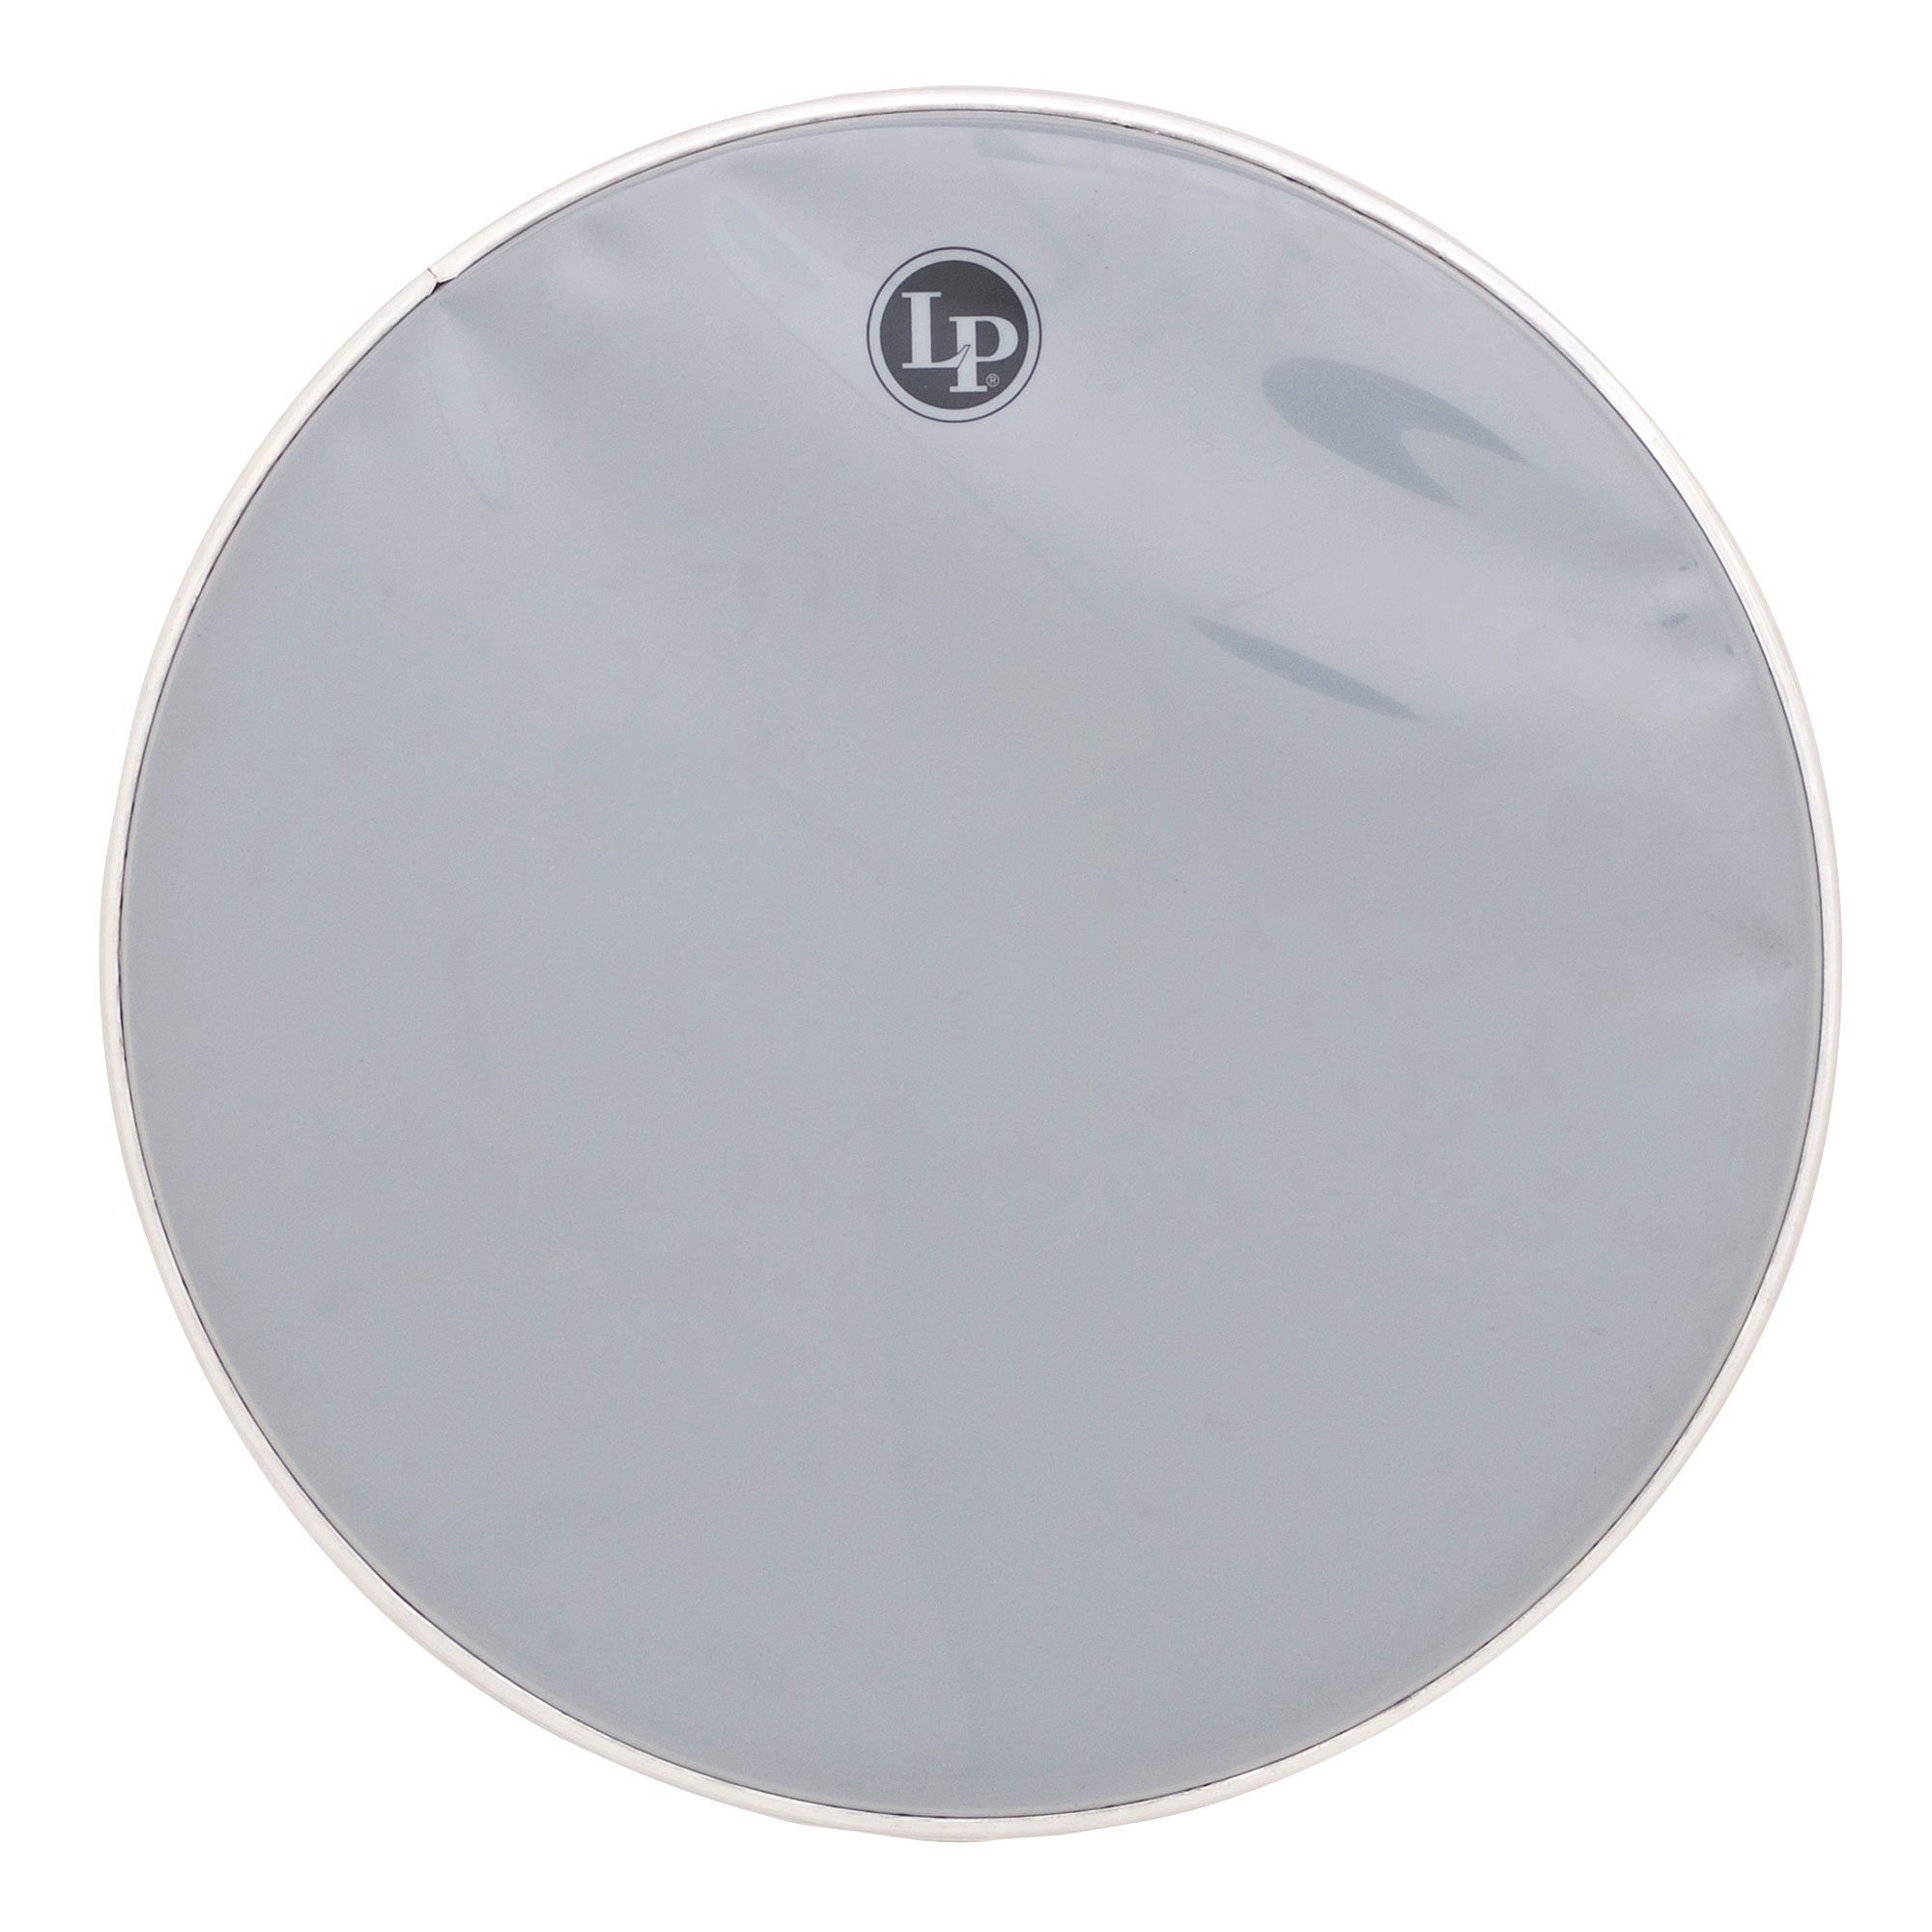 "LP 10 1/4"" Plastic Timbale Head"